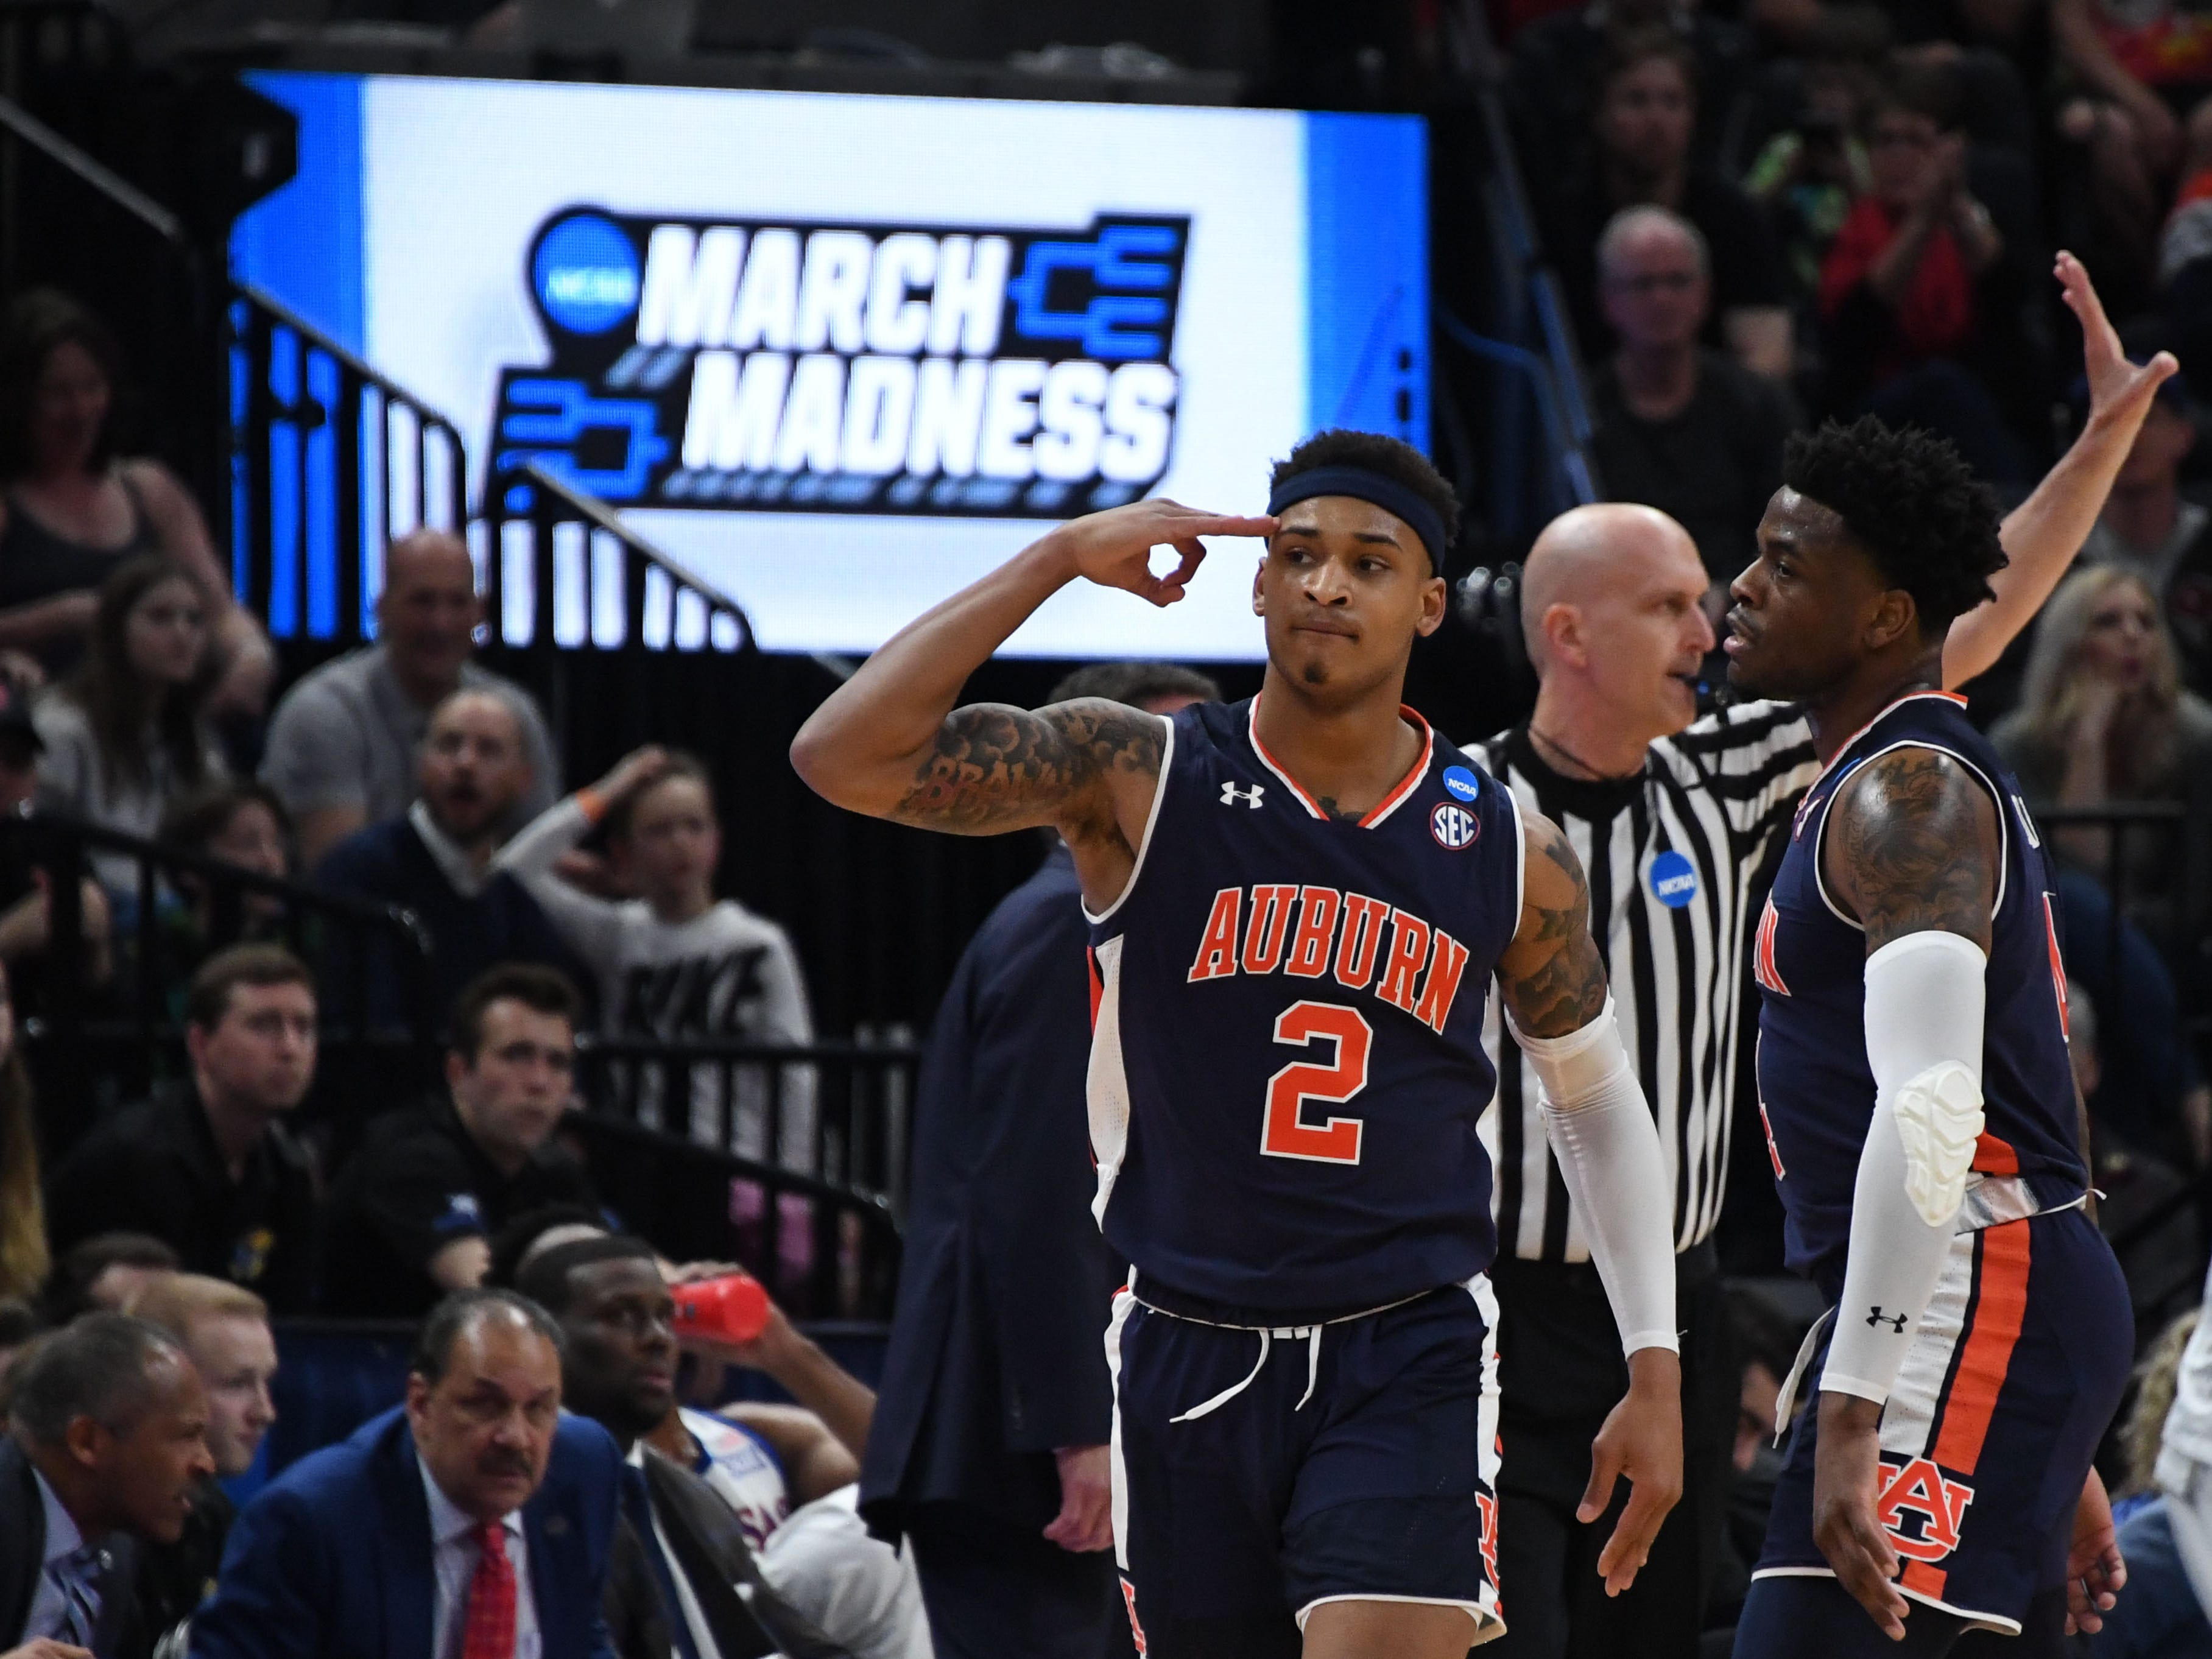 Auburn Tigers guard Bryce Brown (2) reacts after making a 3-pointer against Kansas during the second round of the NCAA Tournament at Vivint Smart Home Arena on March 23, 2019, in Salt Lake City.